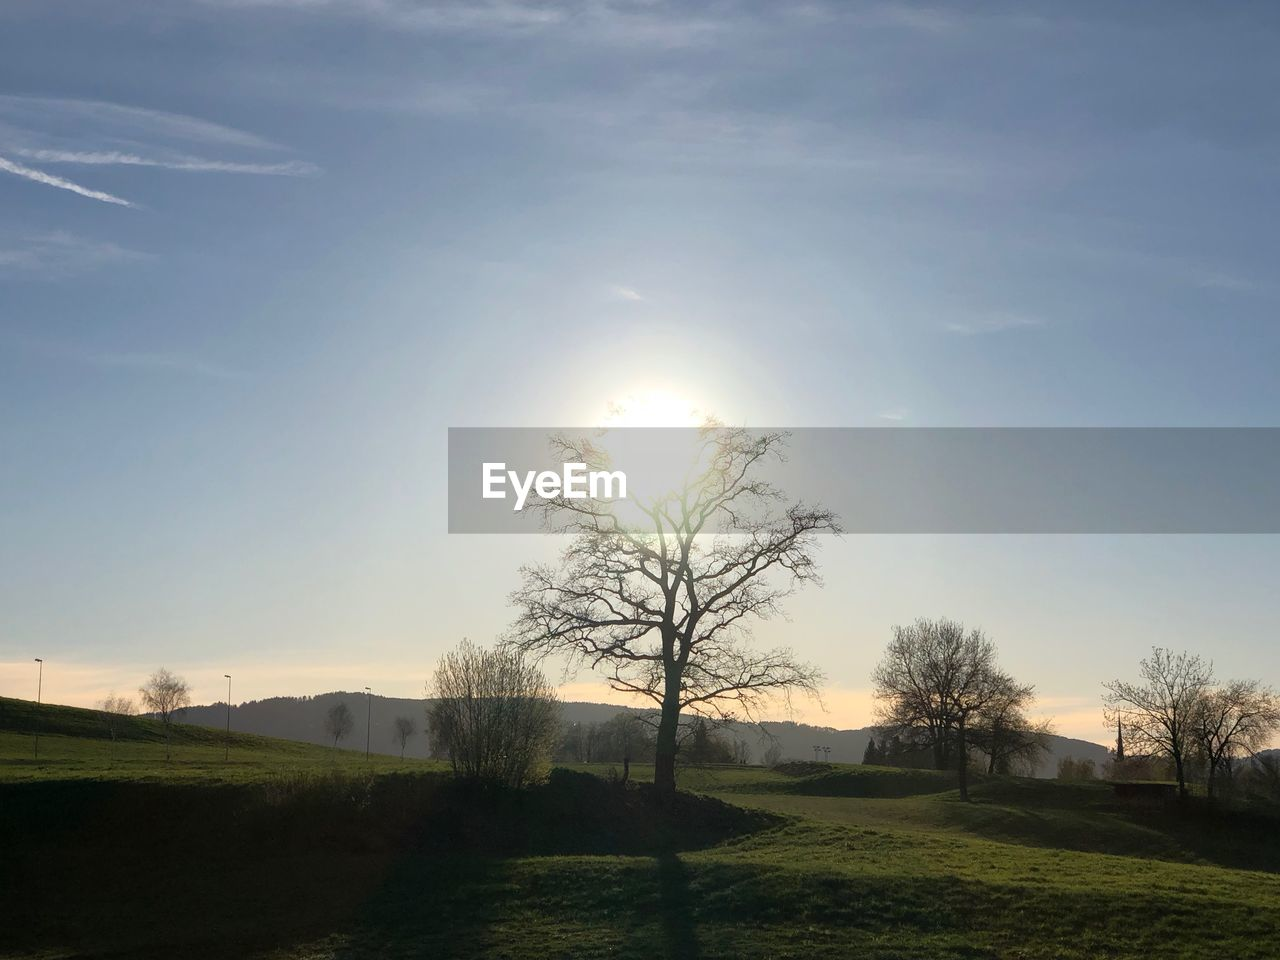 sky, plant, tree, sun, beauty in nature, tranquil scene, scenics - nature, tranquility, sunlight, grass, landscape, nature, field, environment, no people, land, non-urban scene, sunset, growth, outdoors, lens flare, bright